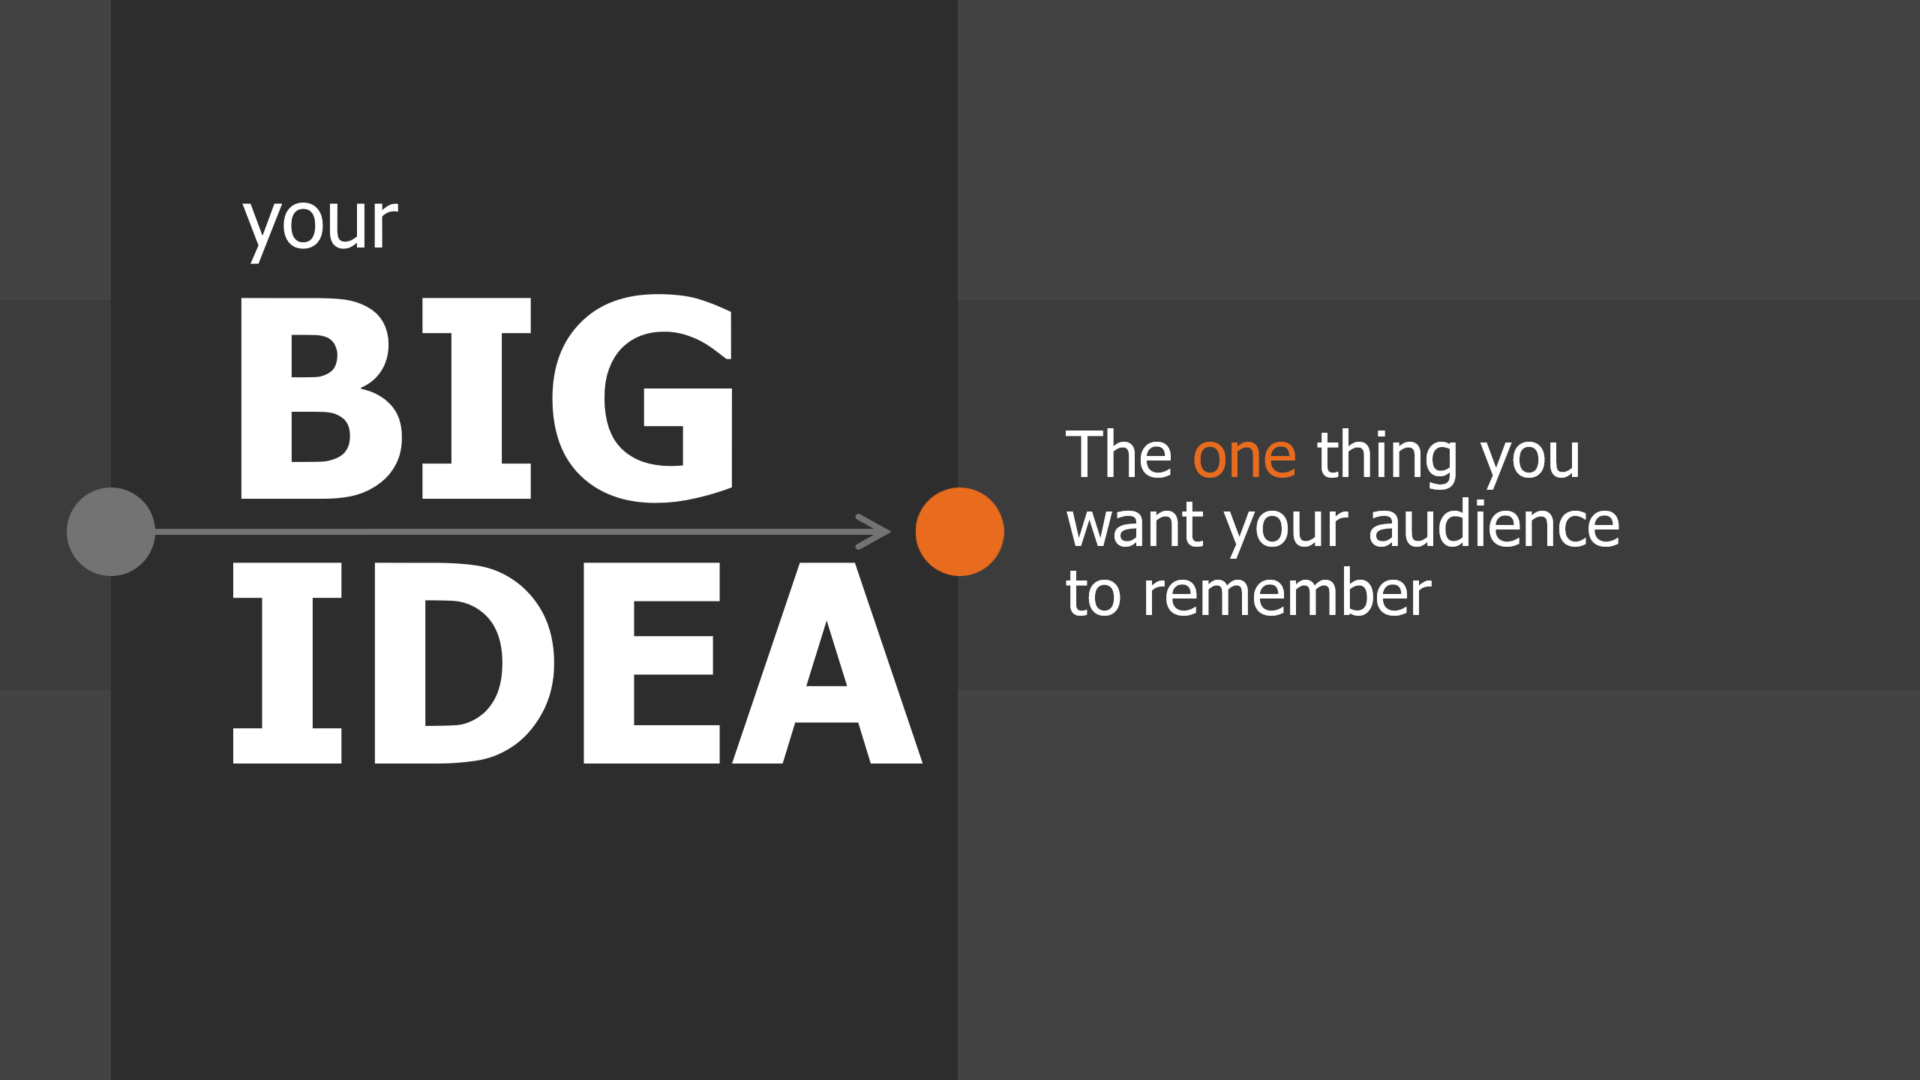 your BIG IDEA: The one thing you want your audience to remember